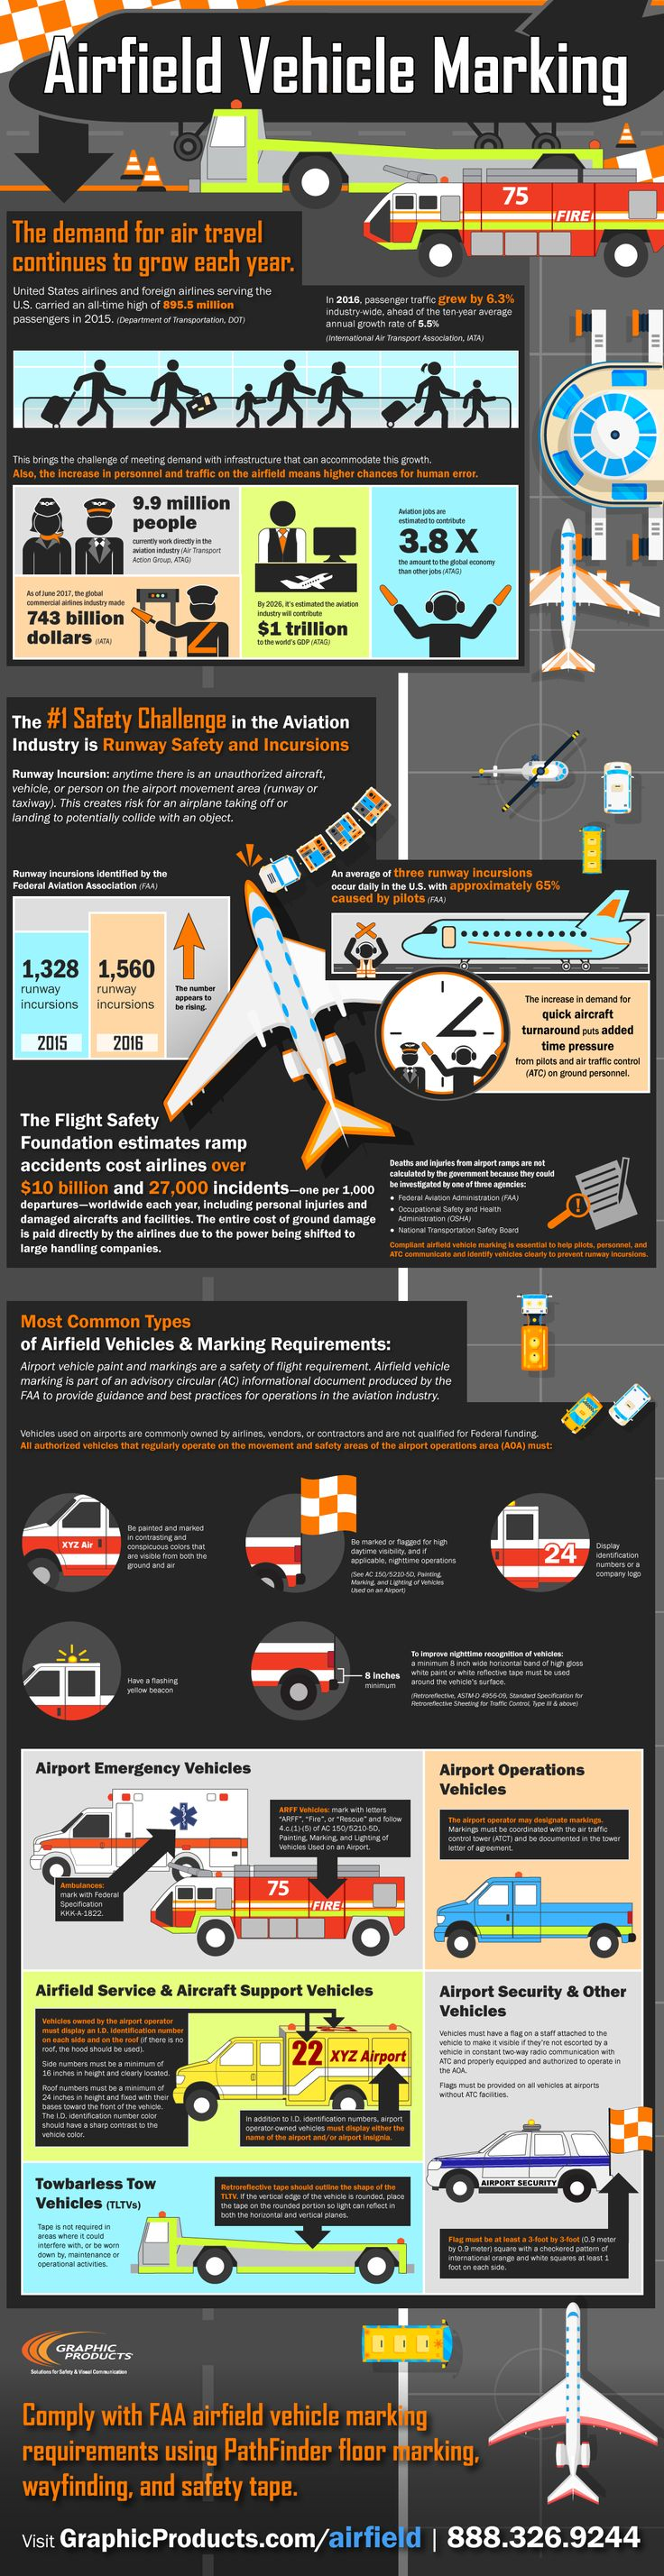 This infographic covers best practices for airfield